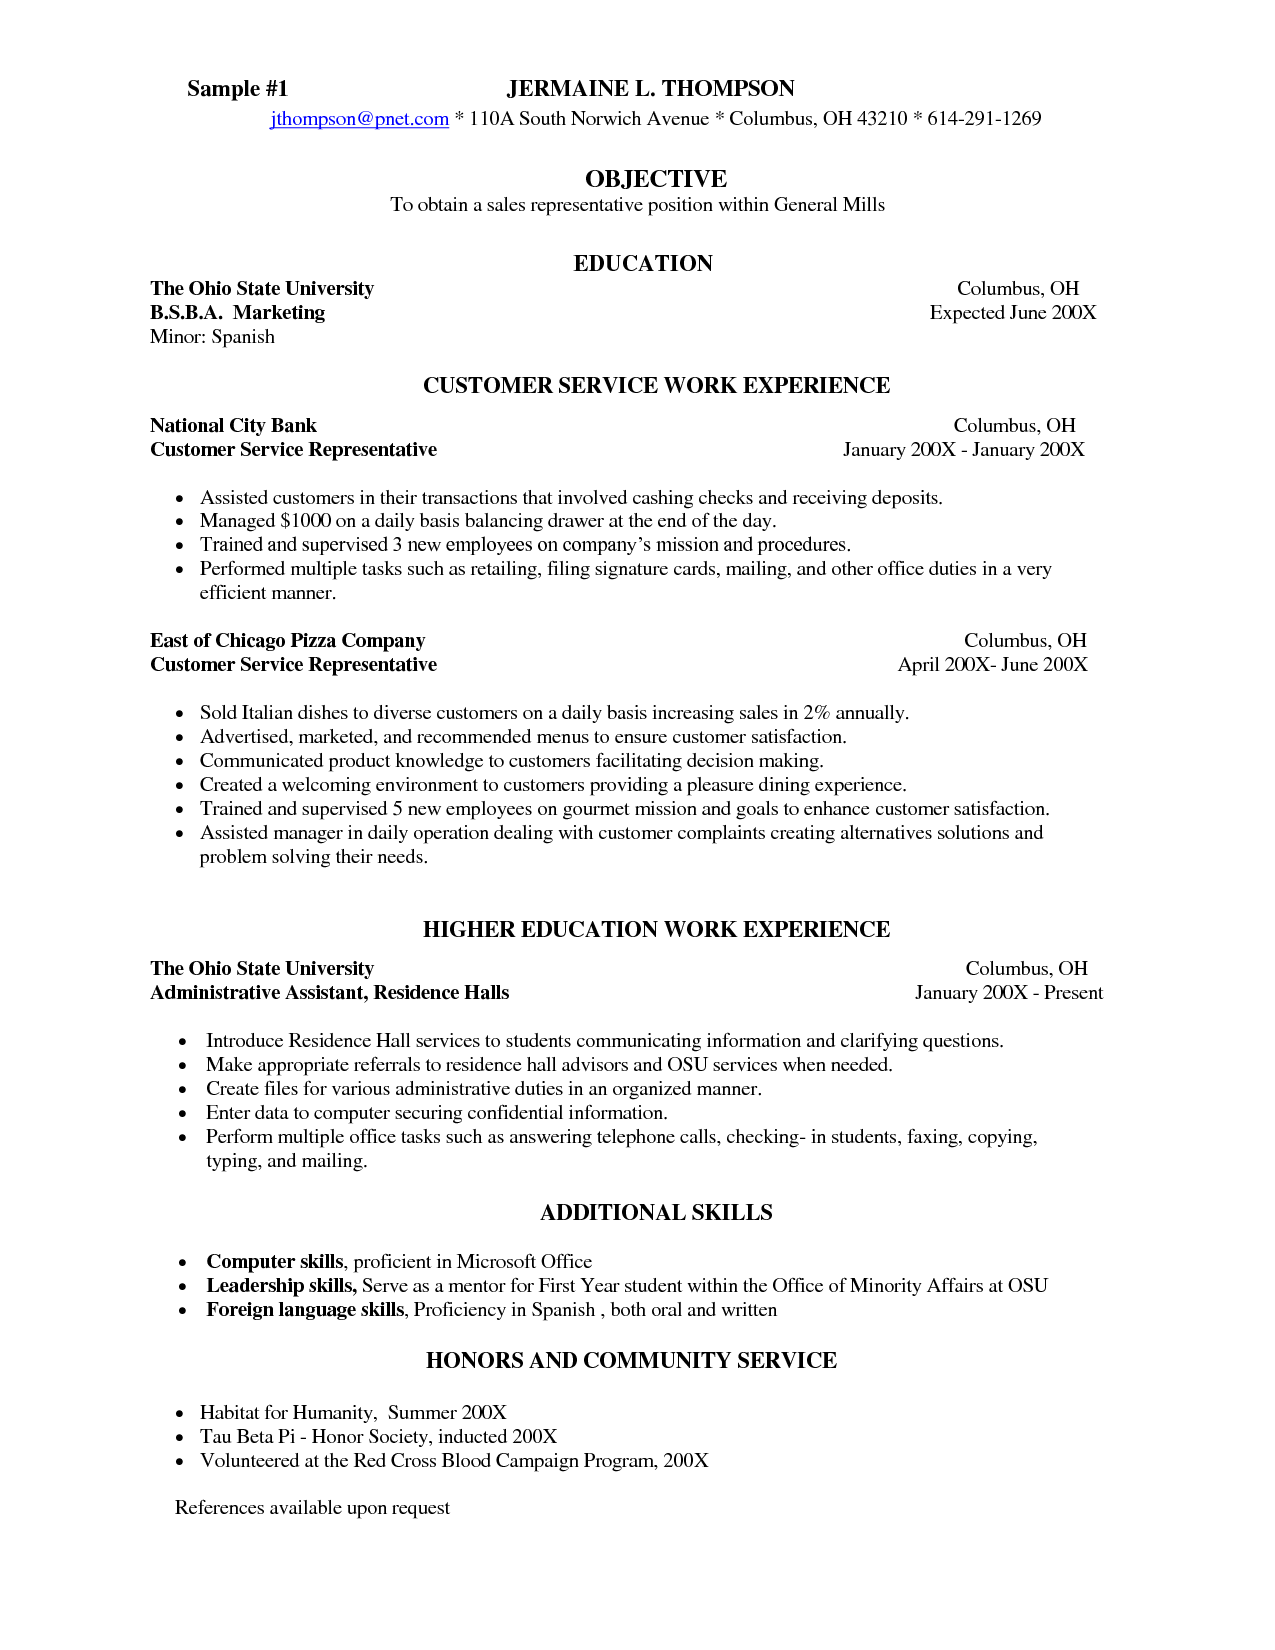 food server resume example - Gecce.tackletarts.co